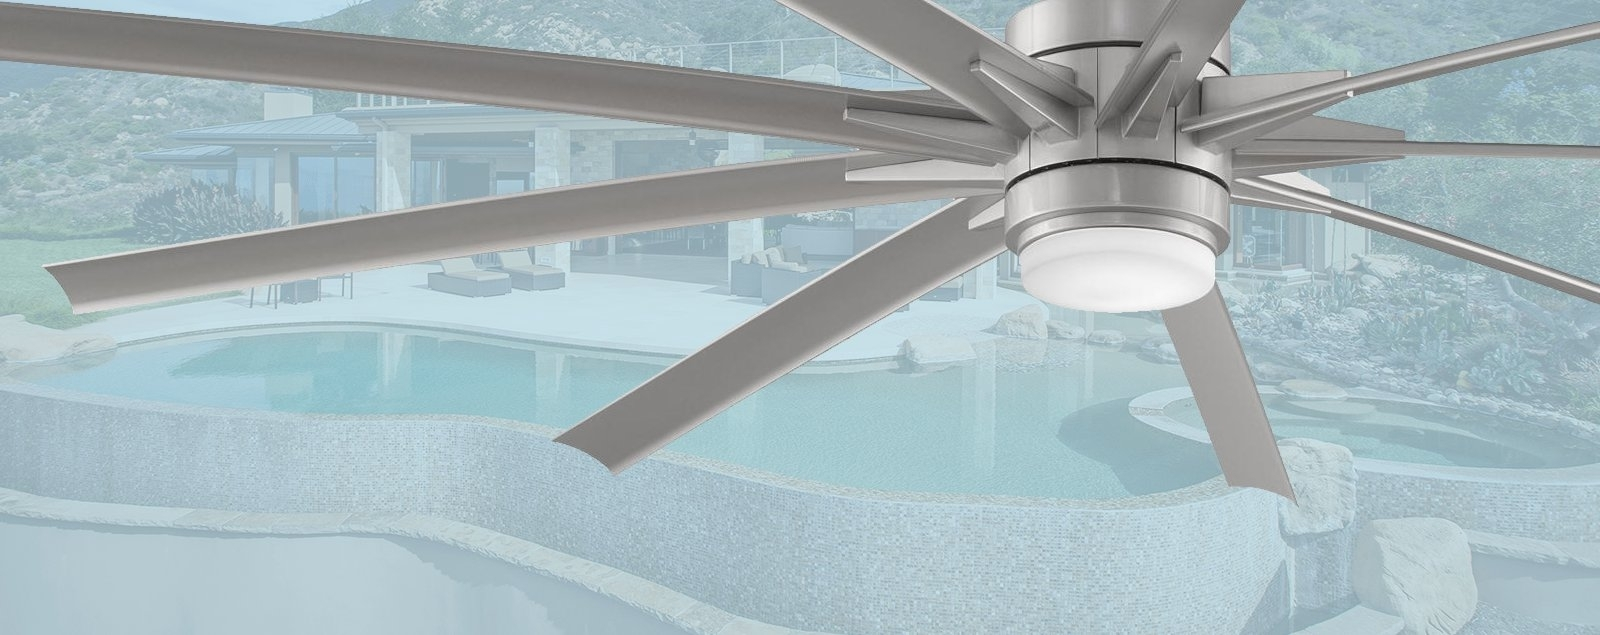 "Recent Large Outdoor Ceiling Fans With Lights Regarding Large Outdoor Ceiling Fans – Outdoor Fans Over 60"" In Diameter (View 19 of 20)"